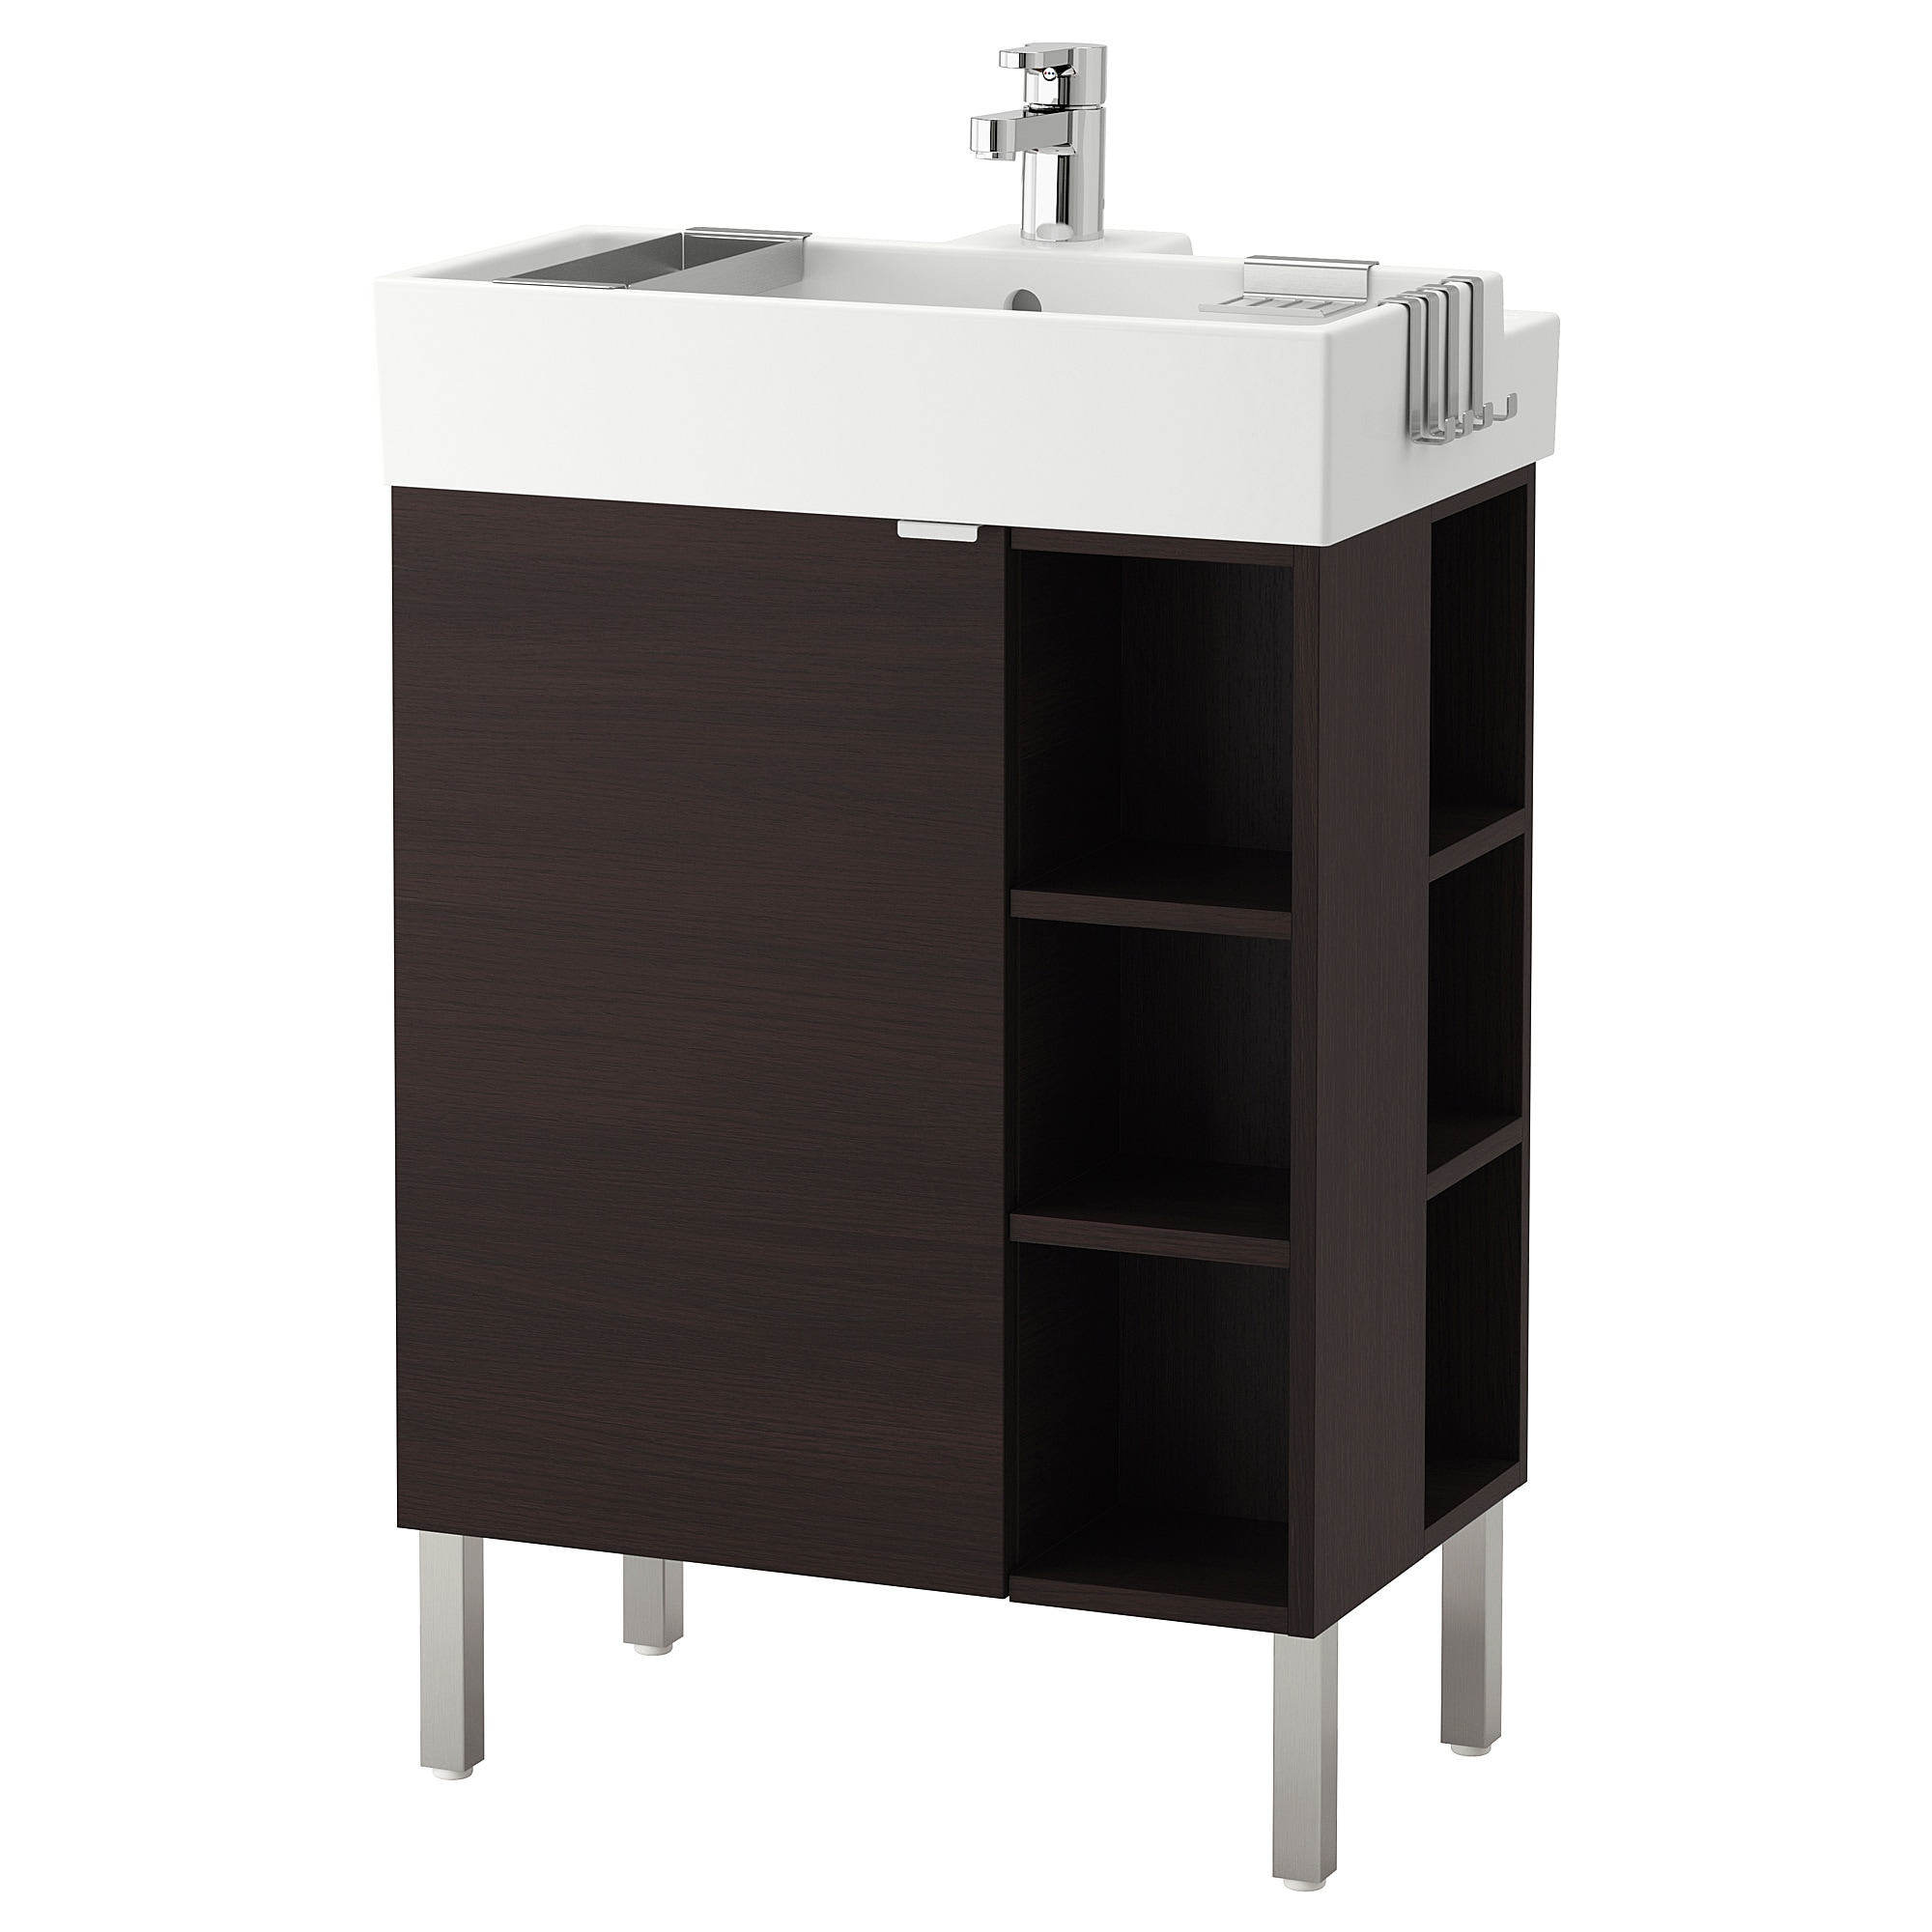 LILL NGEN sinK cabinet 1 door 2 end units  black brown Width Bathroom Vanities Countertops IKEA